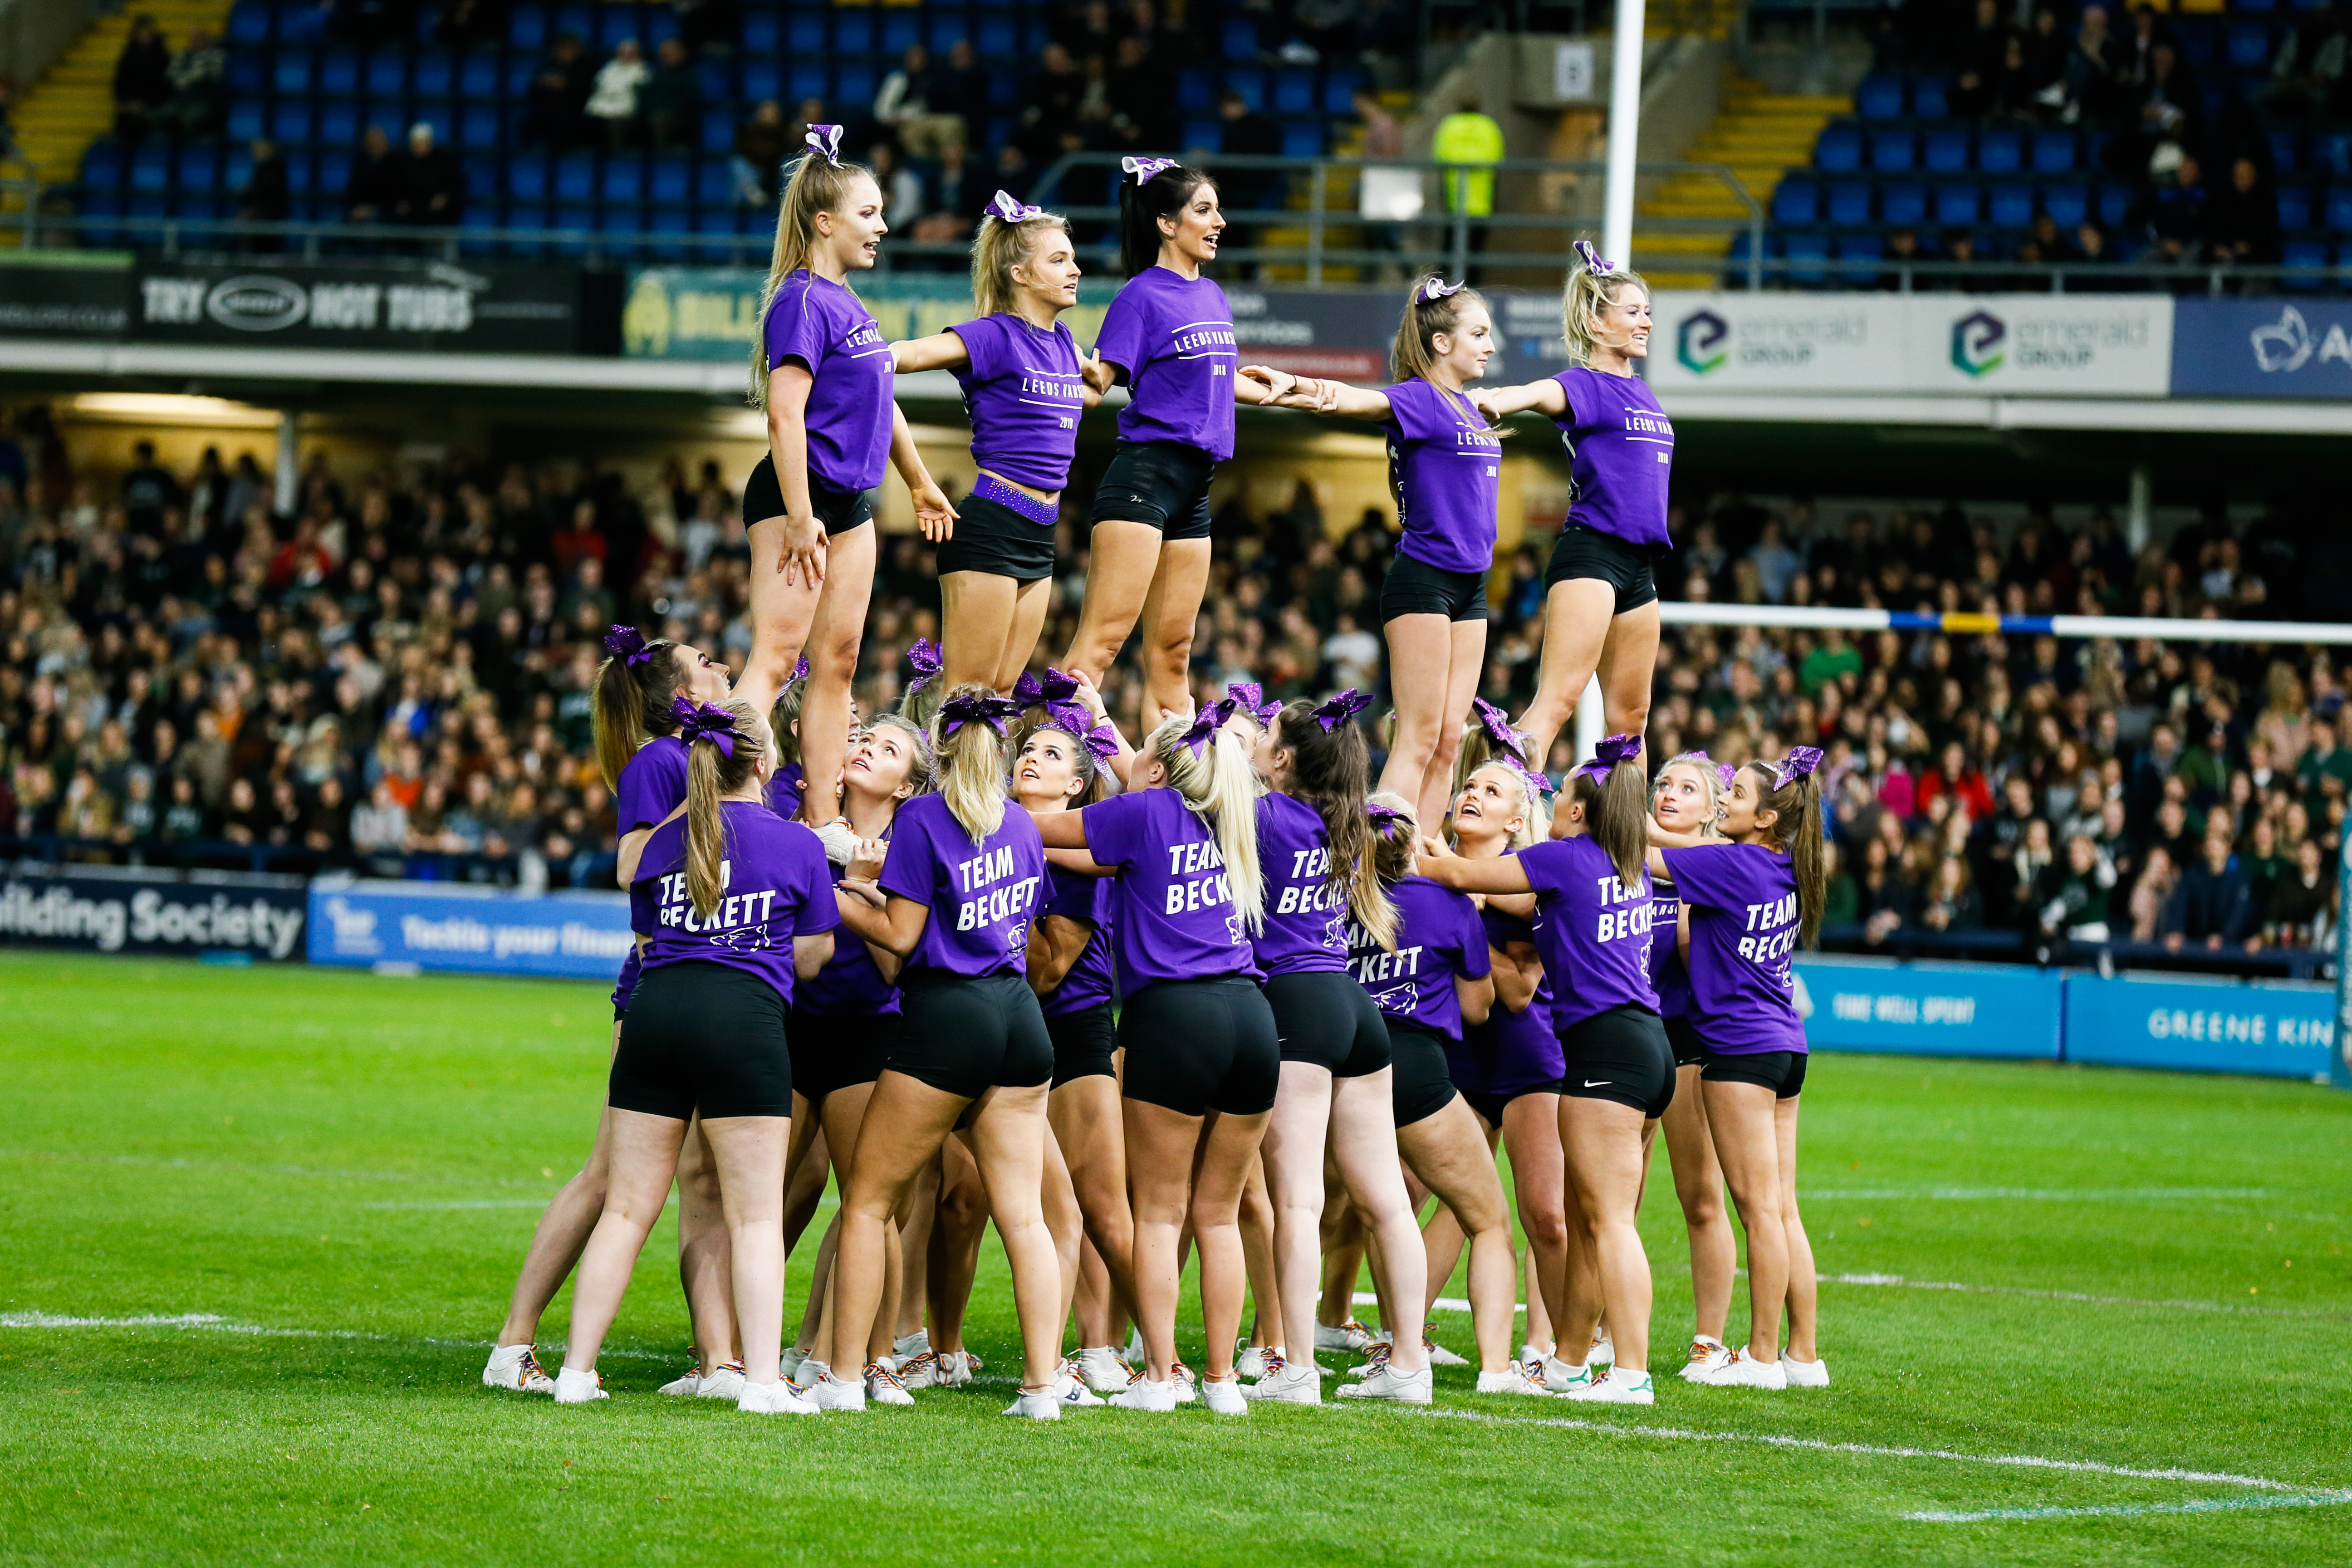 Historic Club Marks given to Leeds Beckett sports clubs